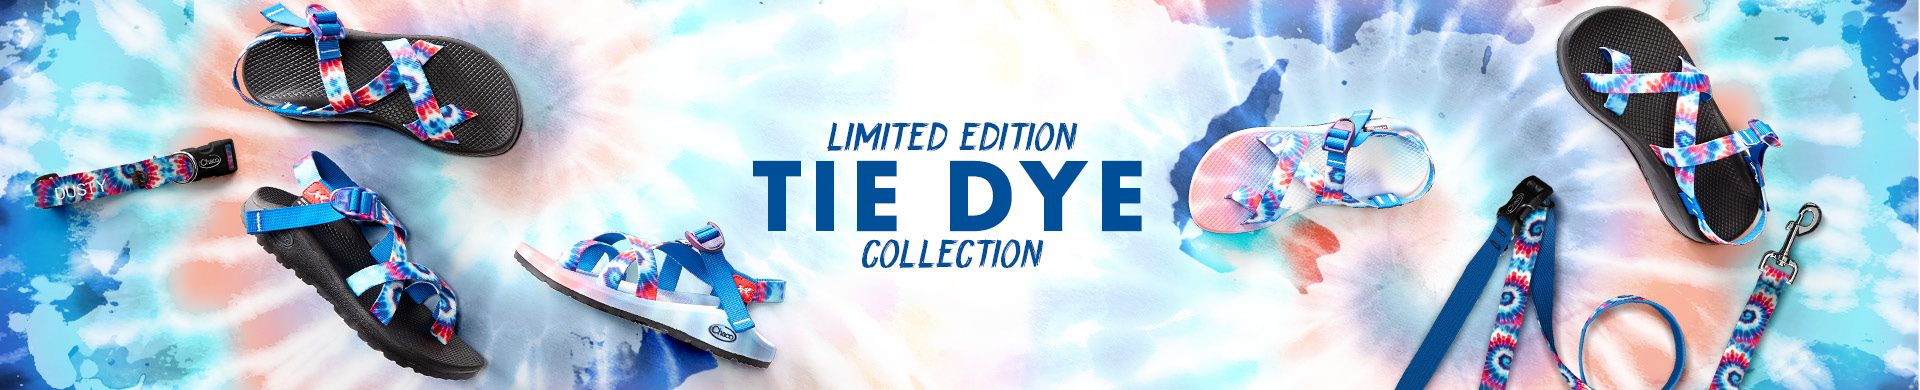 Limited Edition Tie Dye Collection